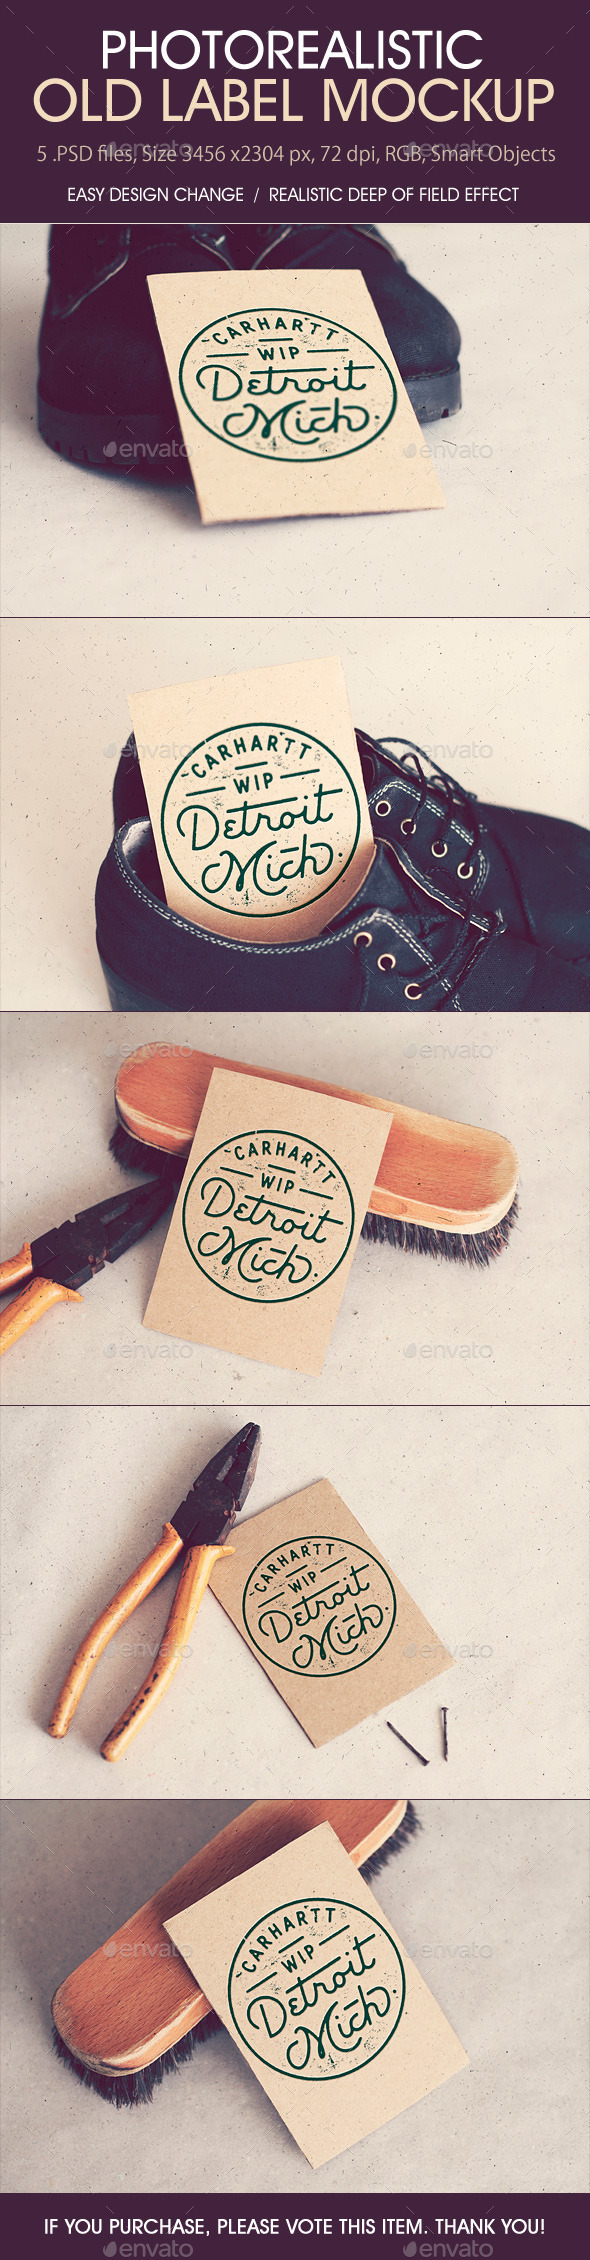 GraphicRiver Photorealistic Old Label Mockup 9031624